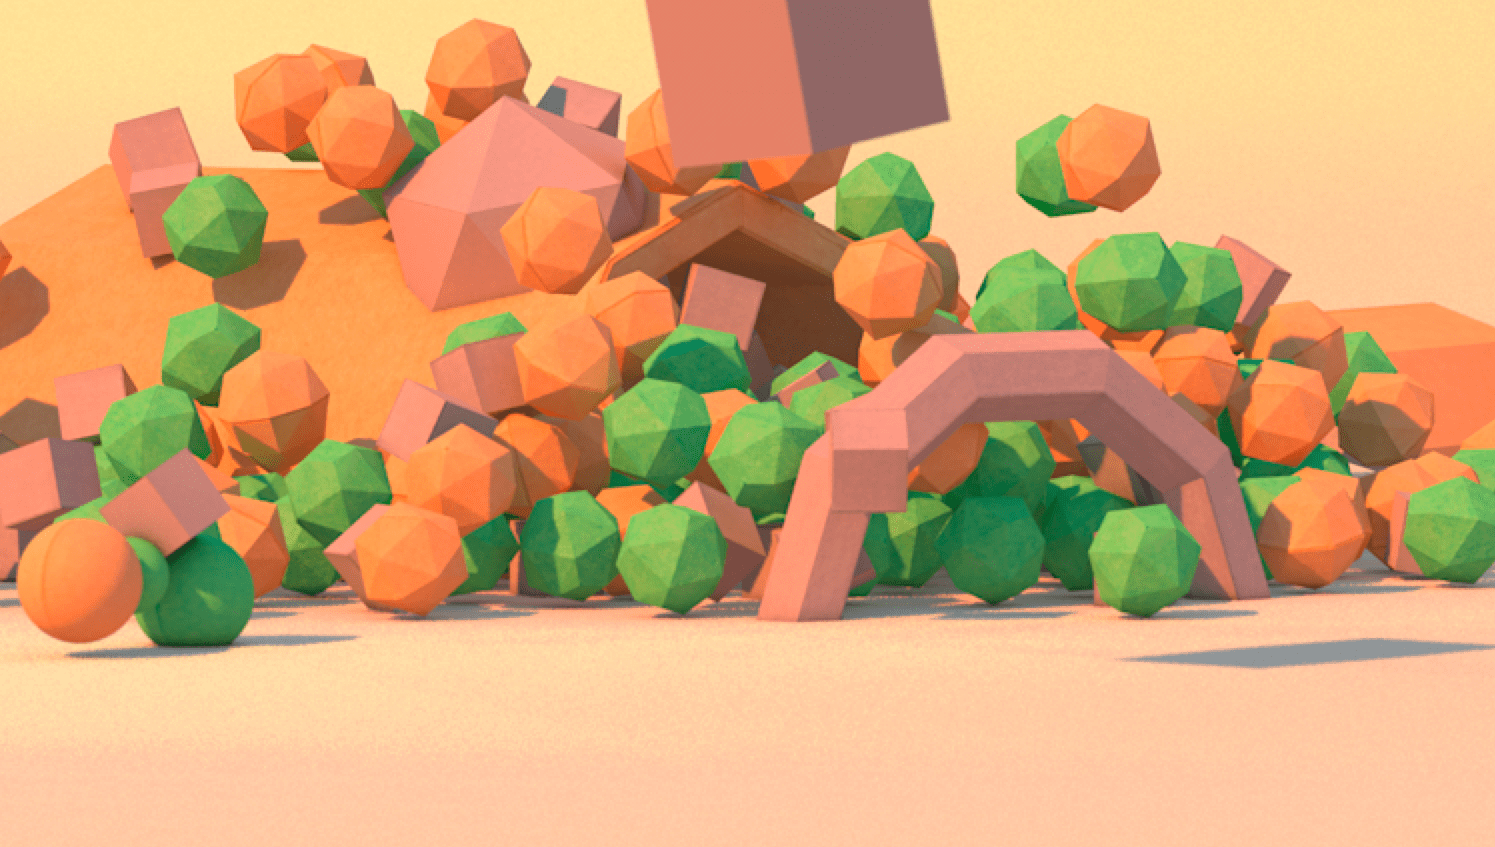 Low poly C4D test